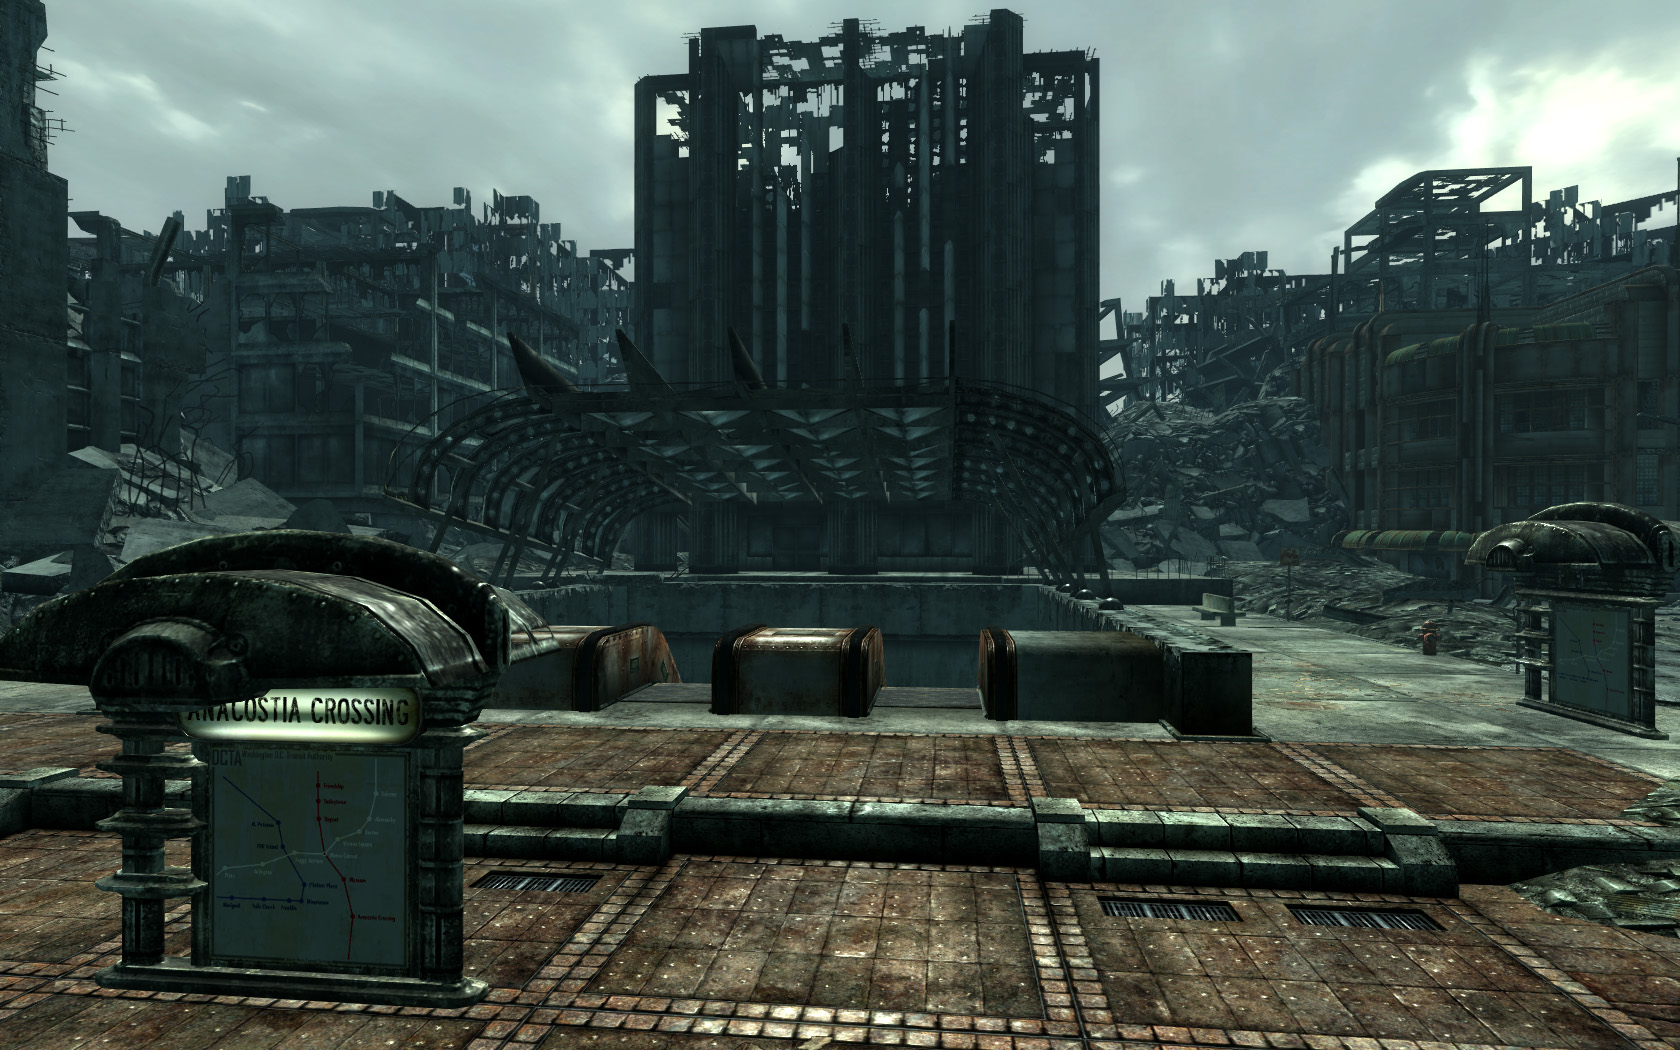 Anacostia crossing the fallout wiki fallout new vegas for Entrance to rivet city